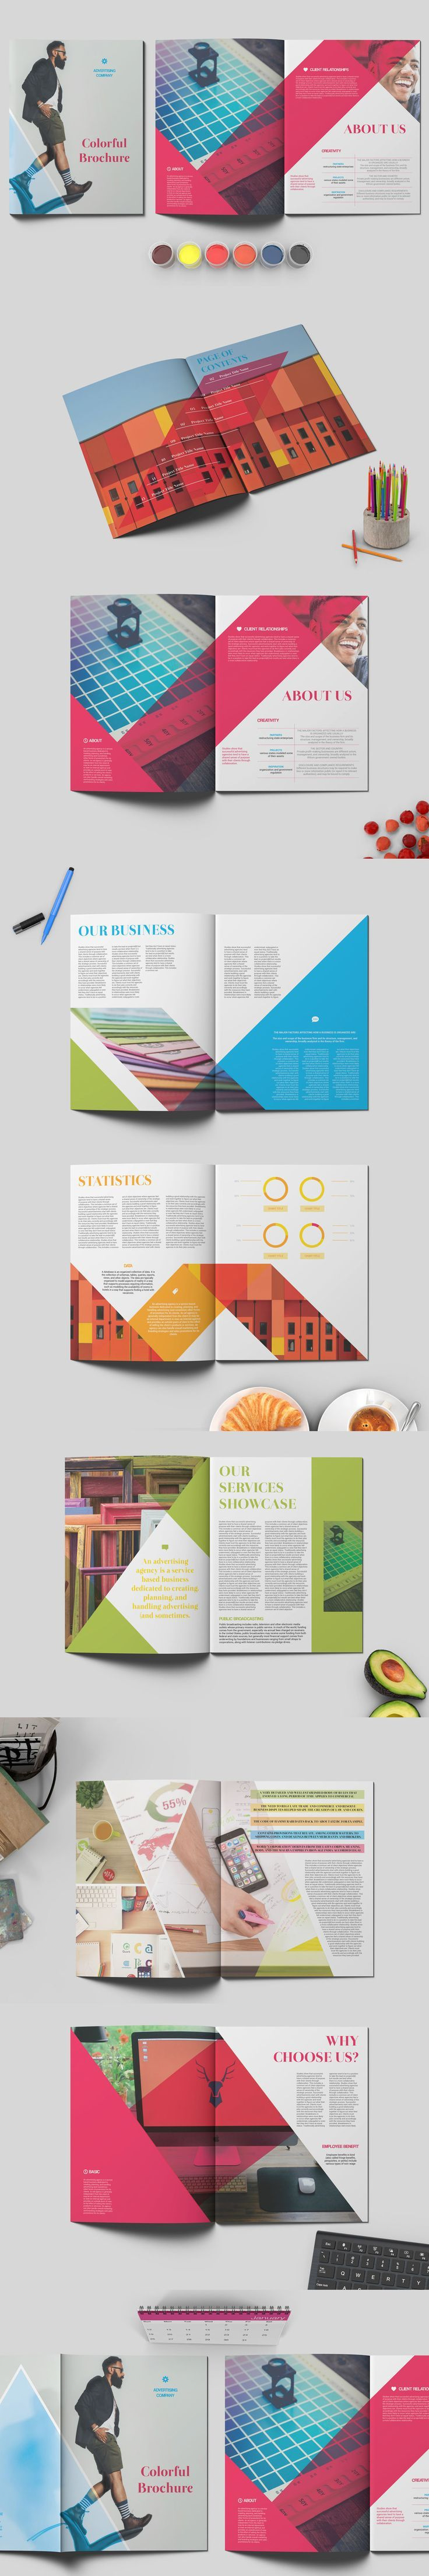 Business infographic business infographic colorful for Infographic brochure template